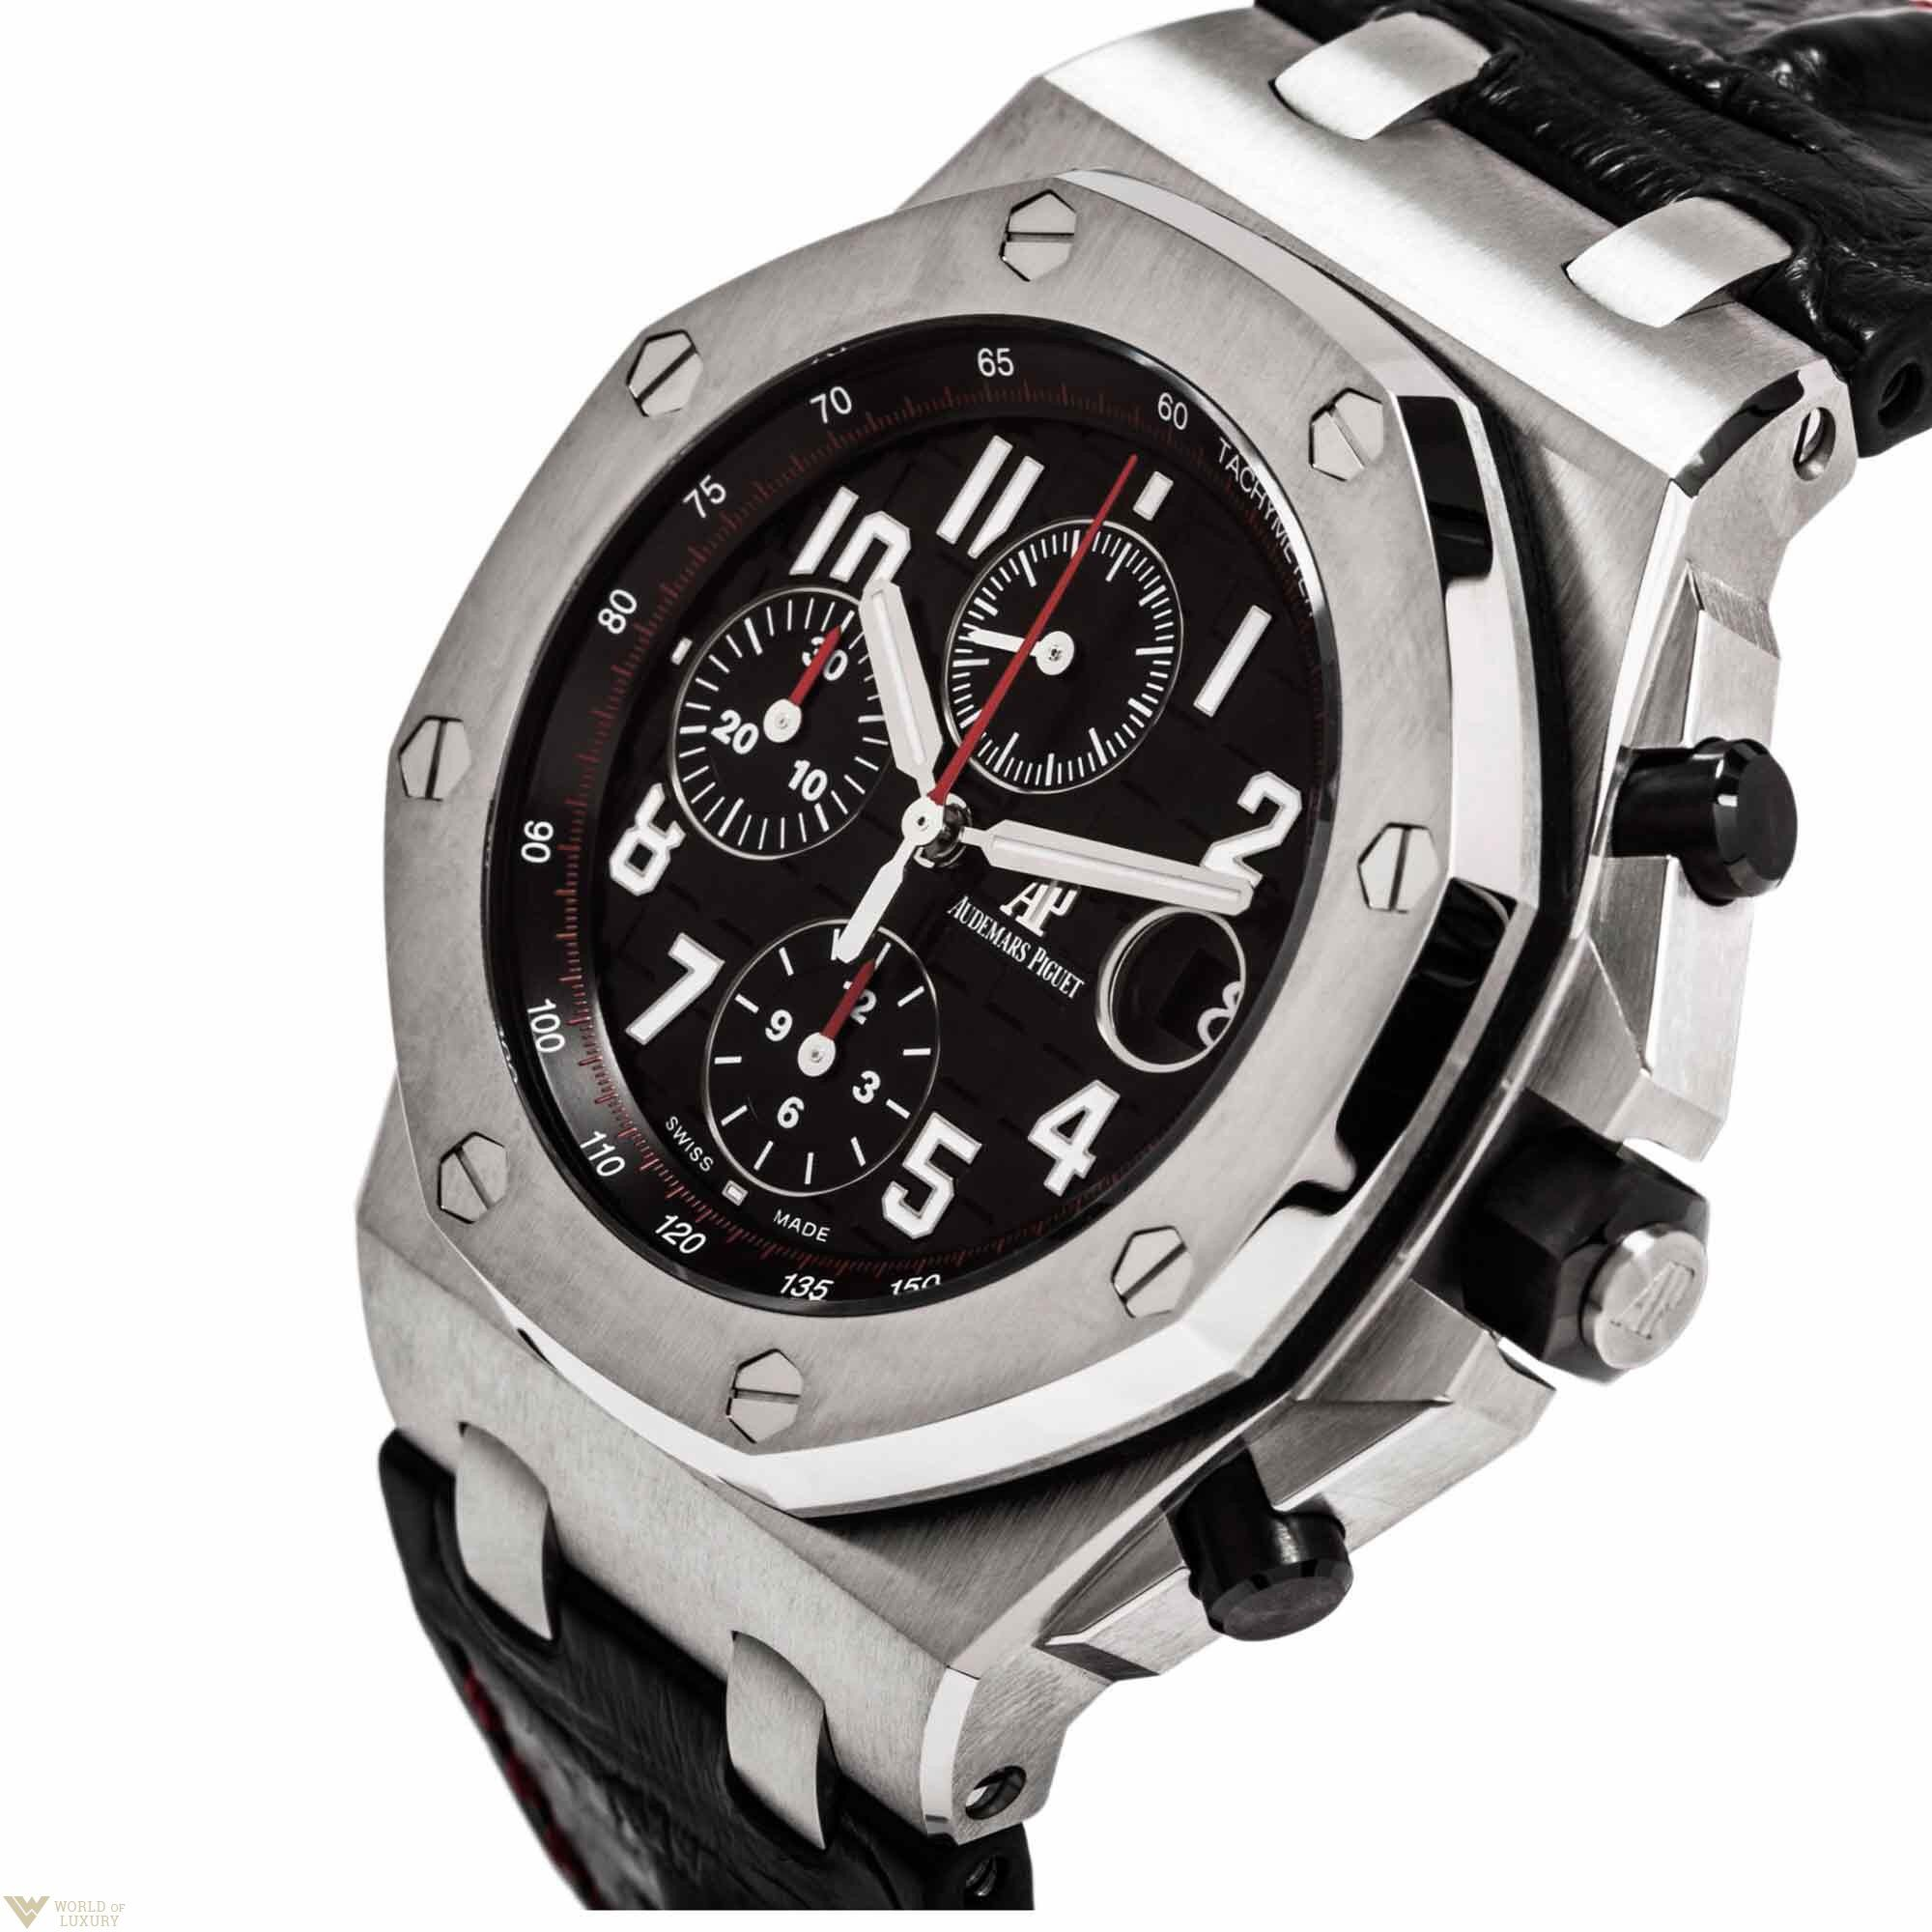 Audemars piguet royal oak offshore vampire ref 26470st oo audemars piguet for Royal oak offshore vampire